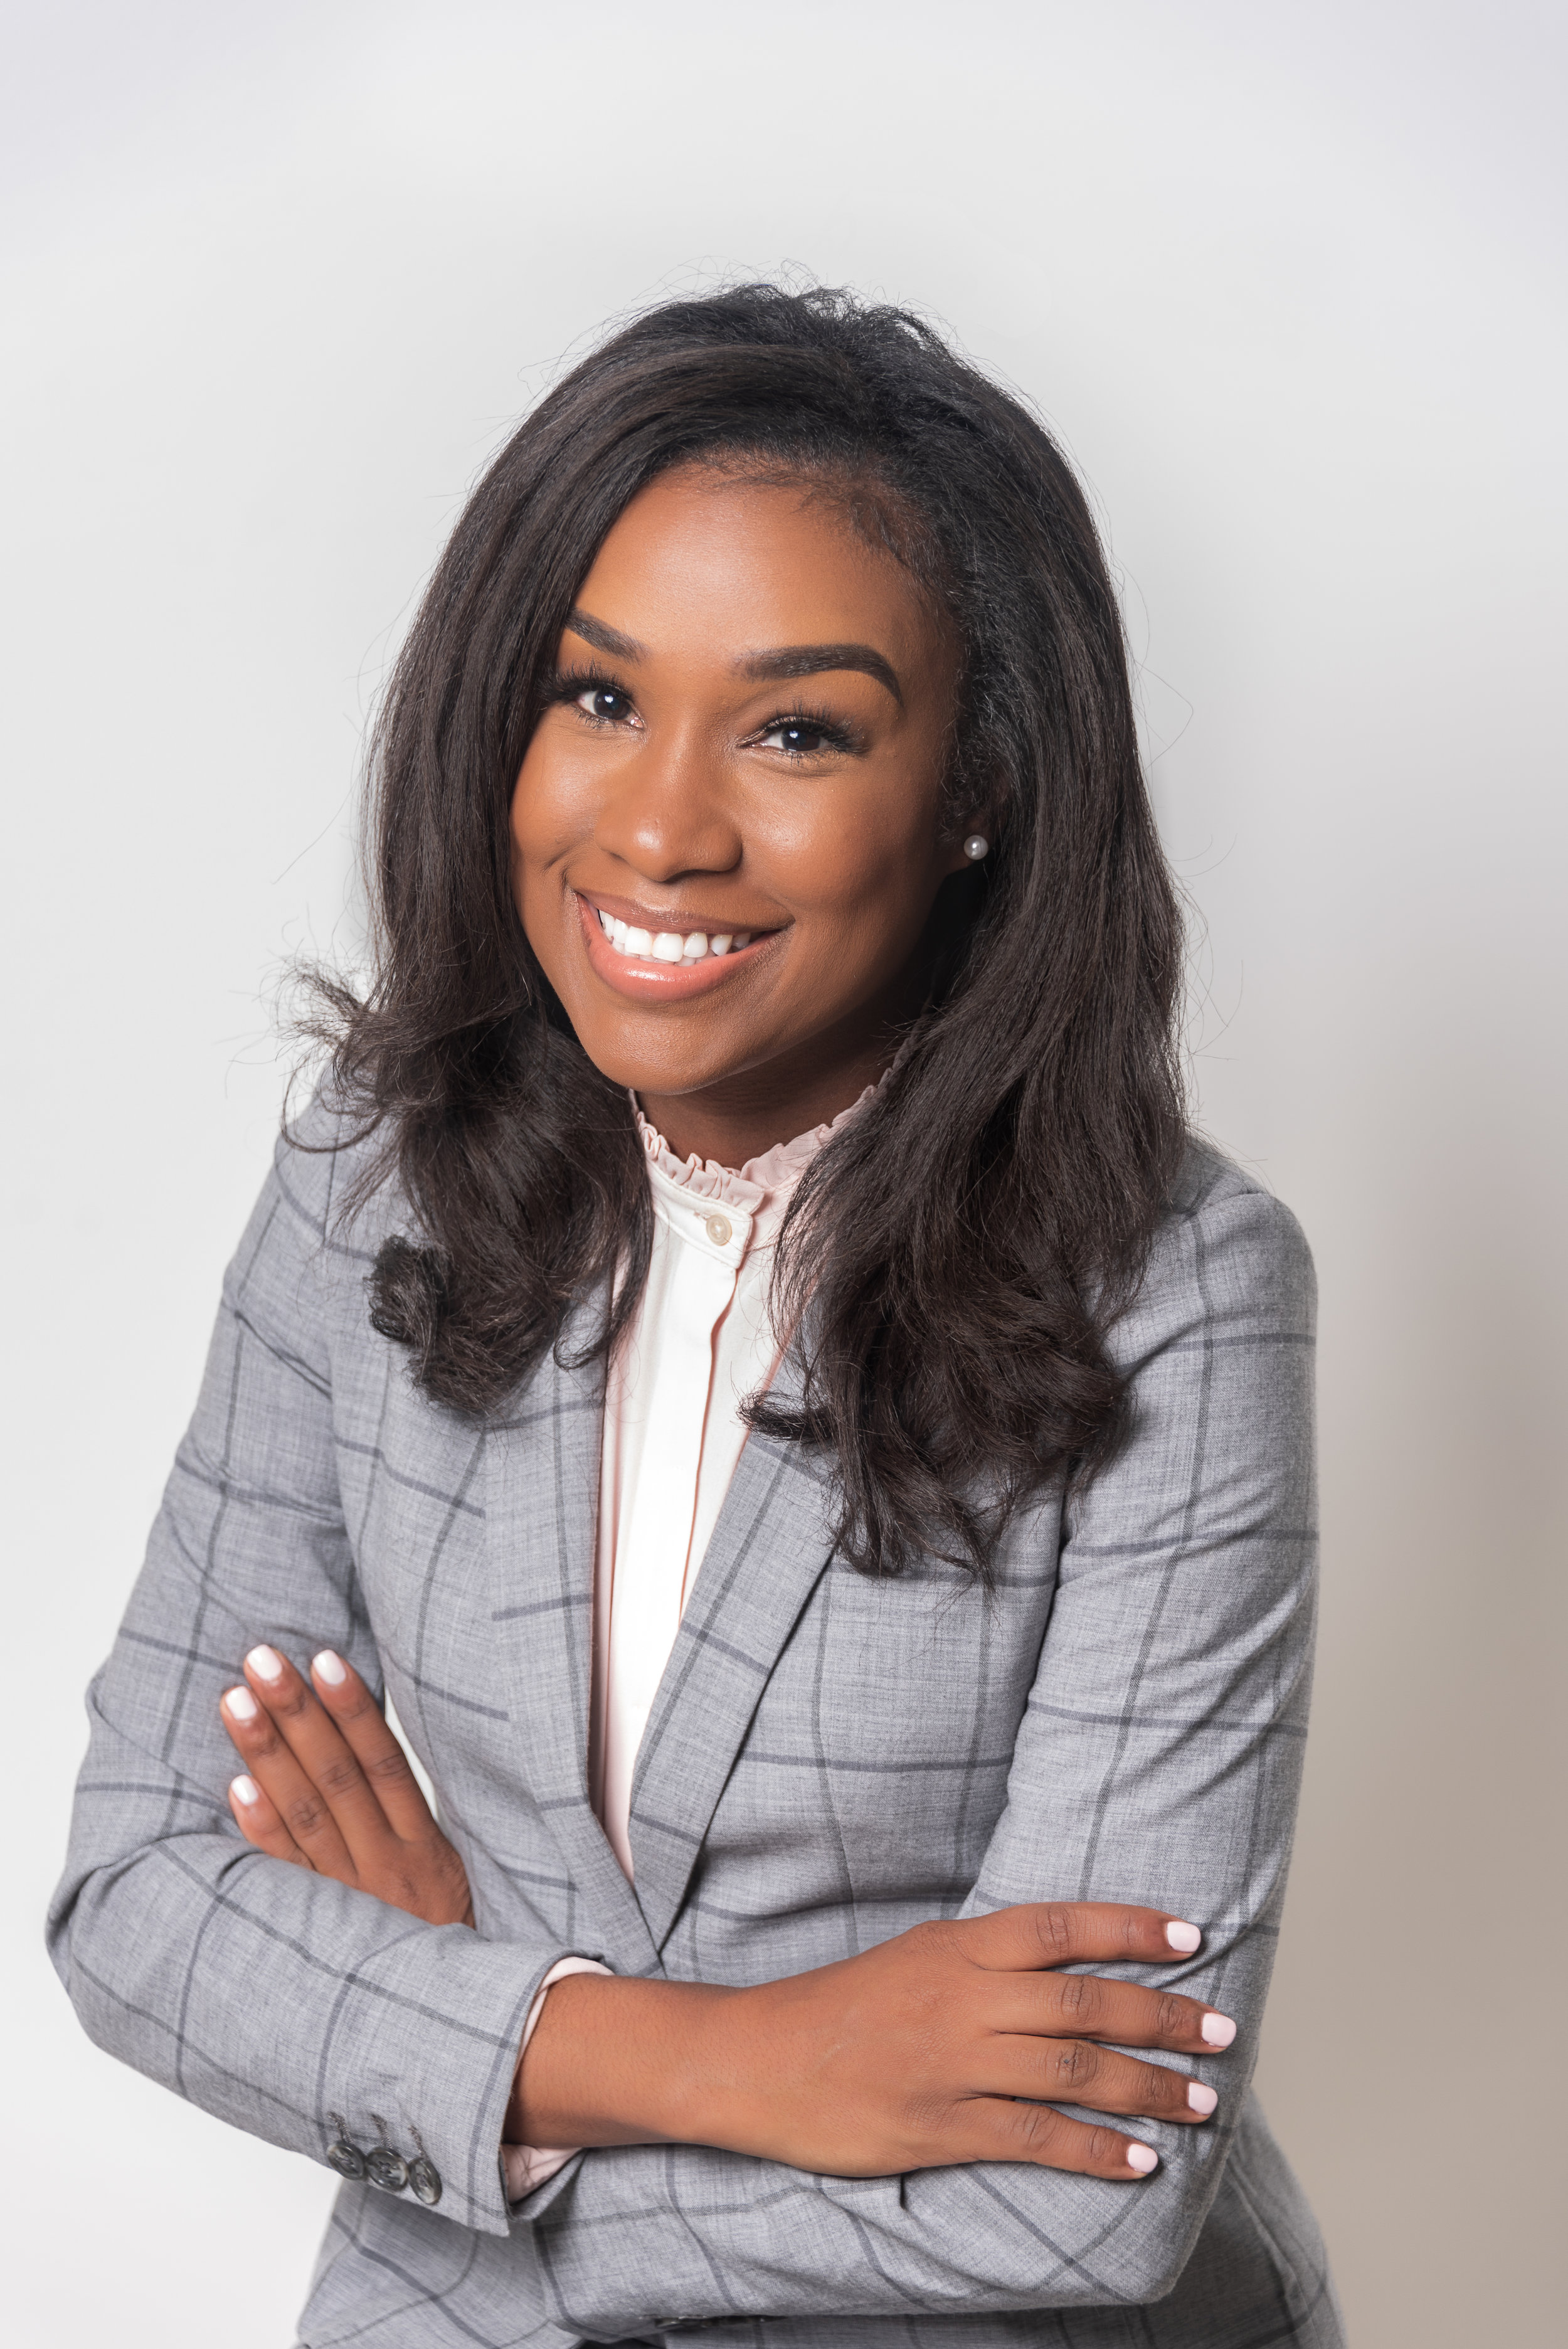 Jina N. Haynes Assistant City Attorney at the City of Atlanta Law Department + Lead Attorney for Security and Information Department at Hartsfield-Jackson Atlanta International Airport